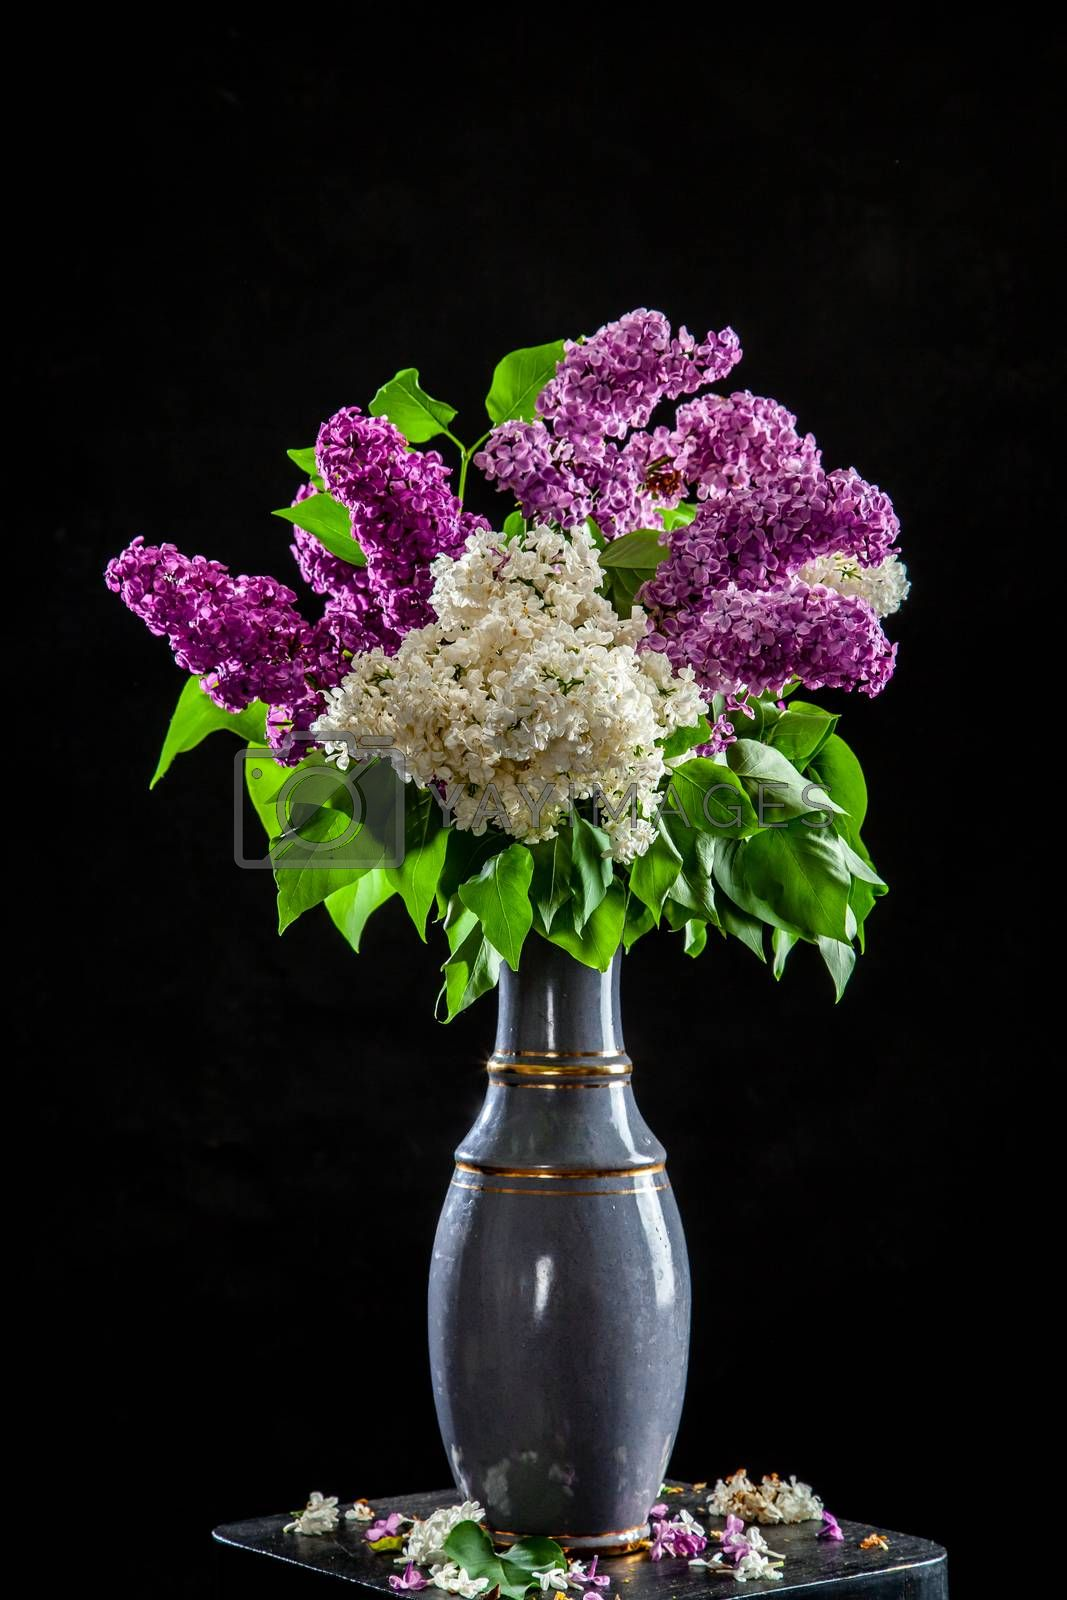 Branches of white and purple lilac in vase on black background. Spring branch of blooming lilac on the table with black background. Fallen lilac flowers on the table.